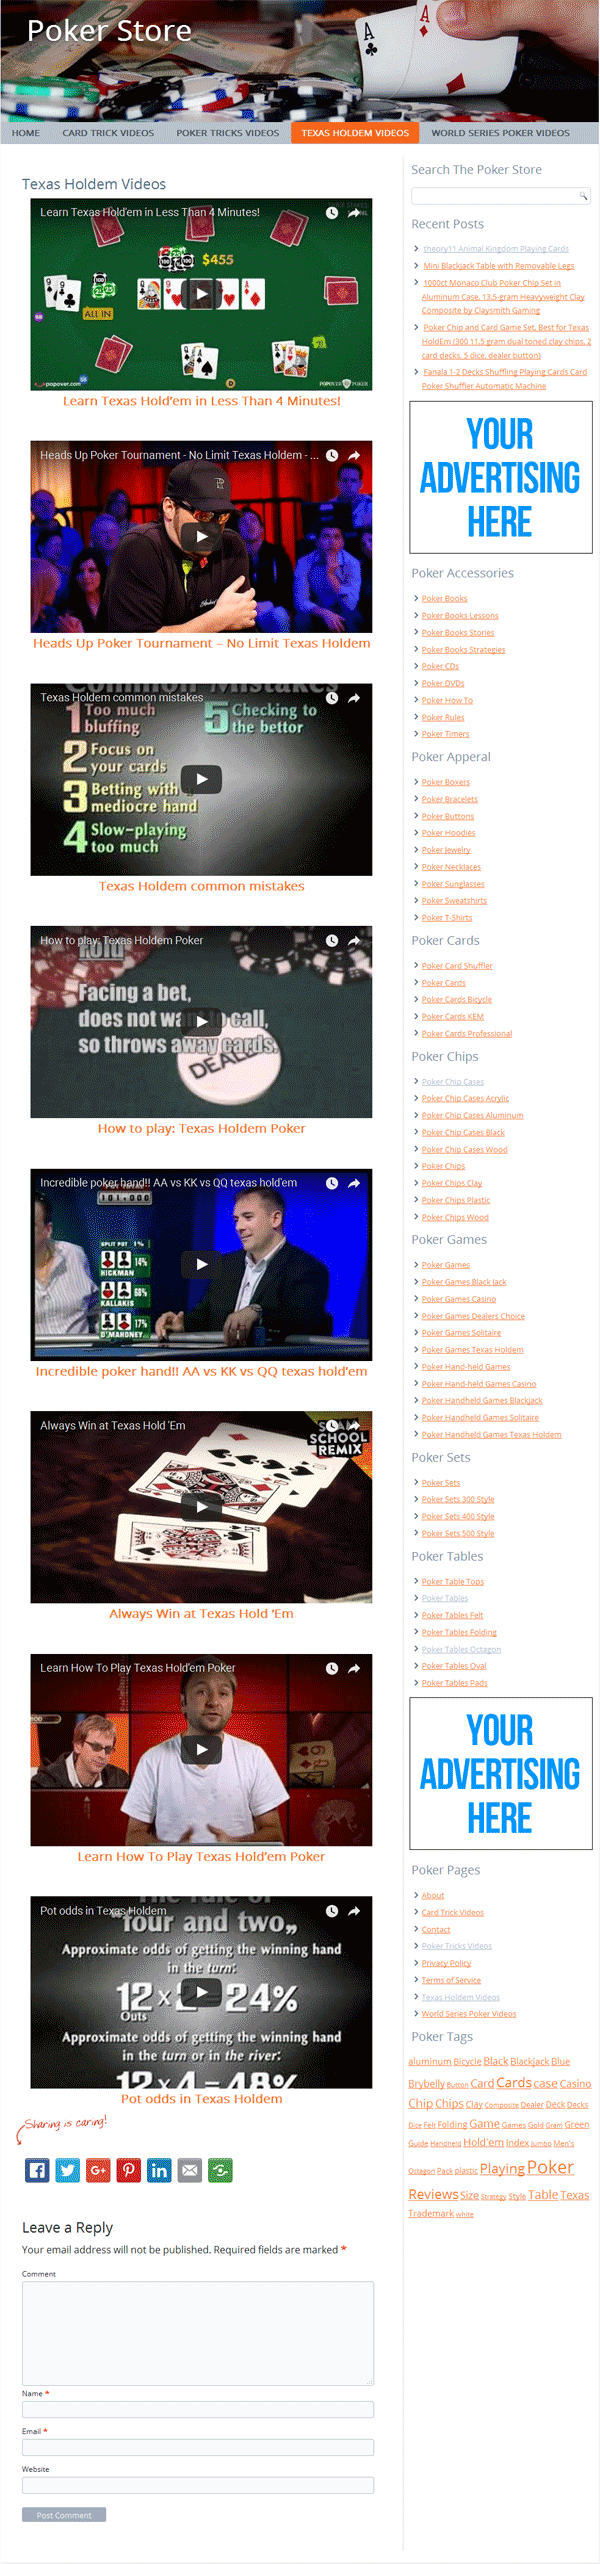 poker plr amazon store website